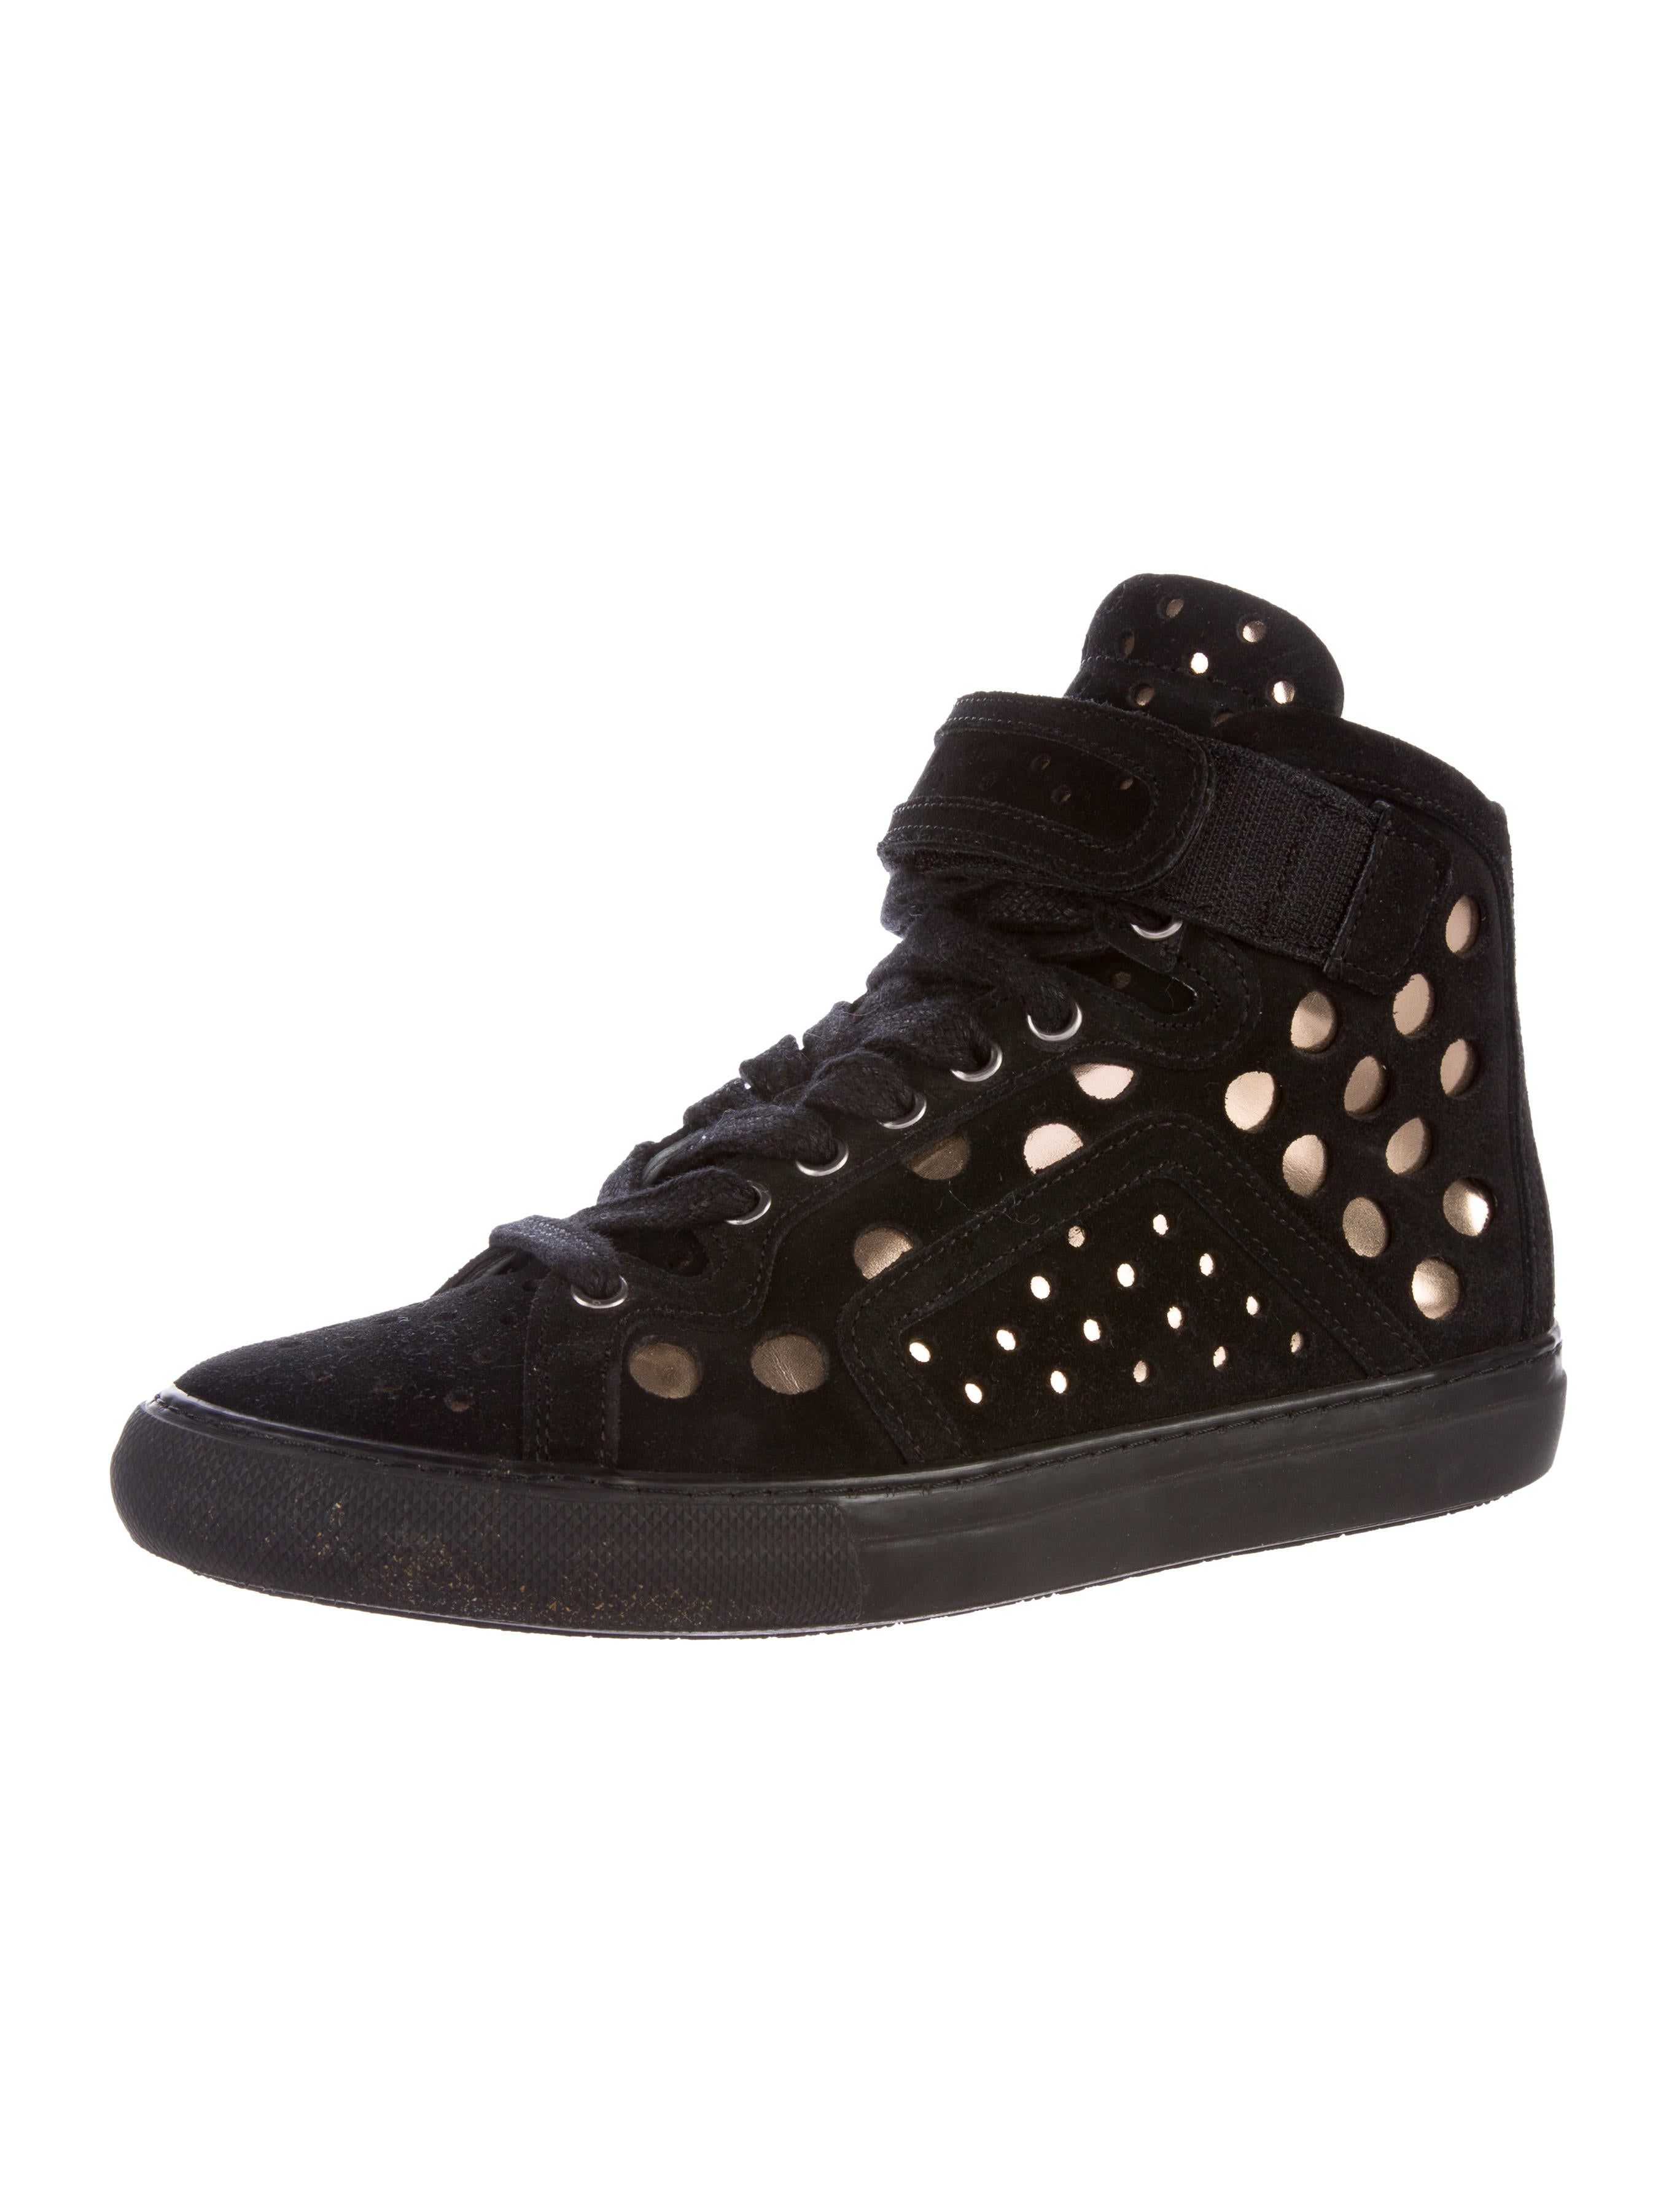 pierre hardy suede high top sneakers shoes pie23117 the realreal. Black Bedroom Furniture Sets. Home Design Ideas